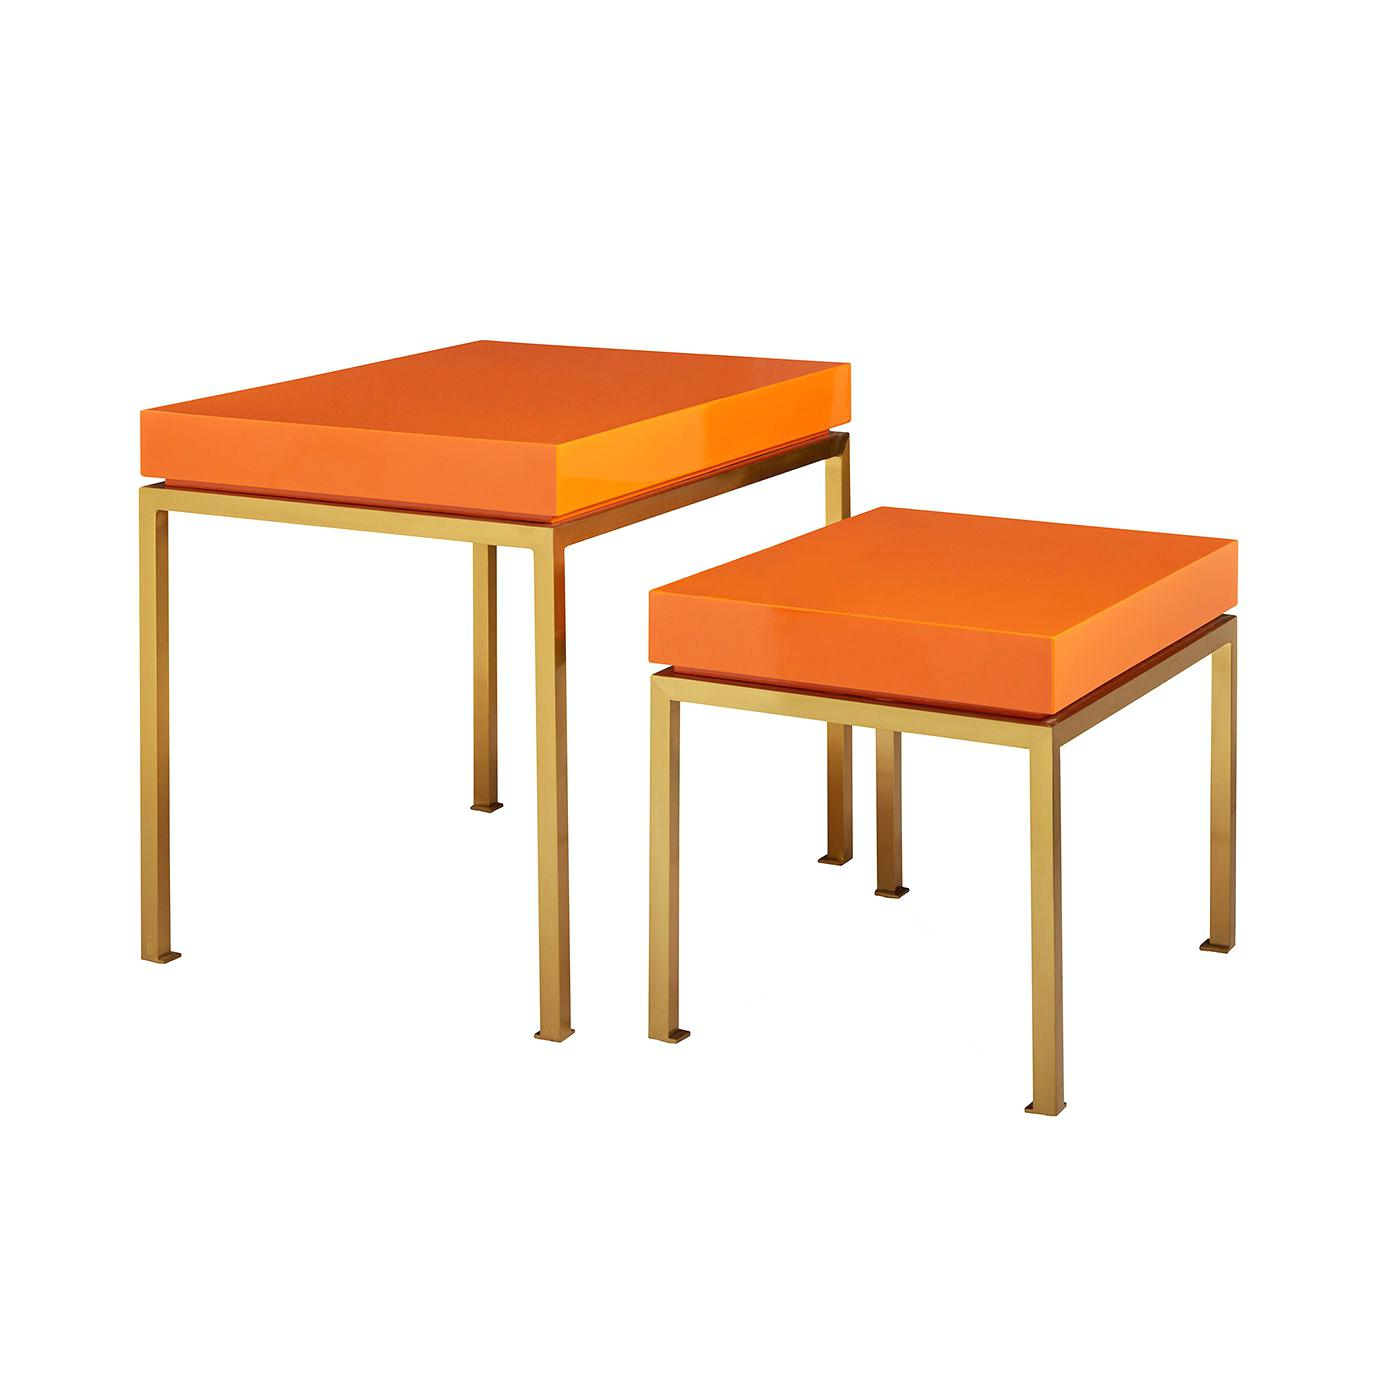 orange accent table ylg tall side alt outdoor metal patio clearance storage entryway furniture with mirror corner ikea target file cabinet hand painted dress mainstays marble